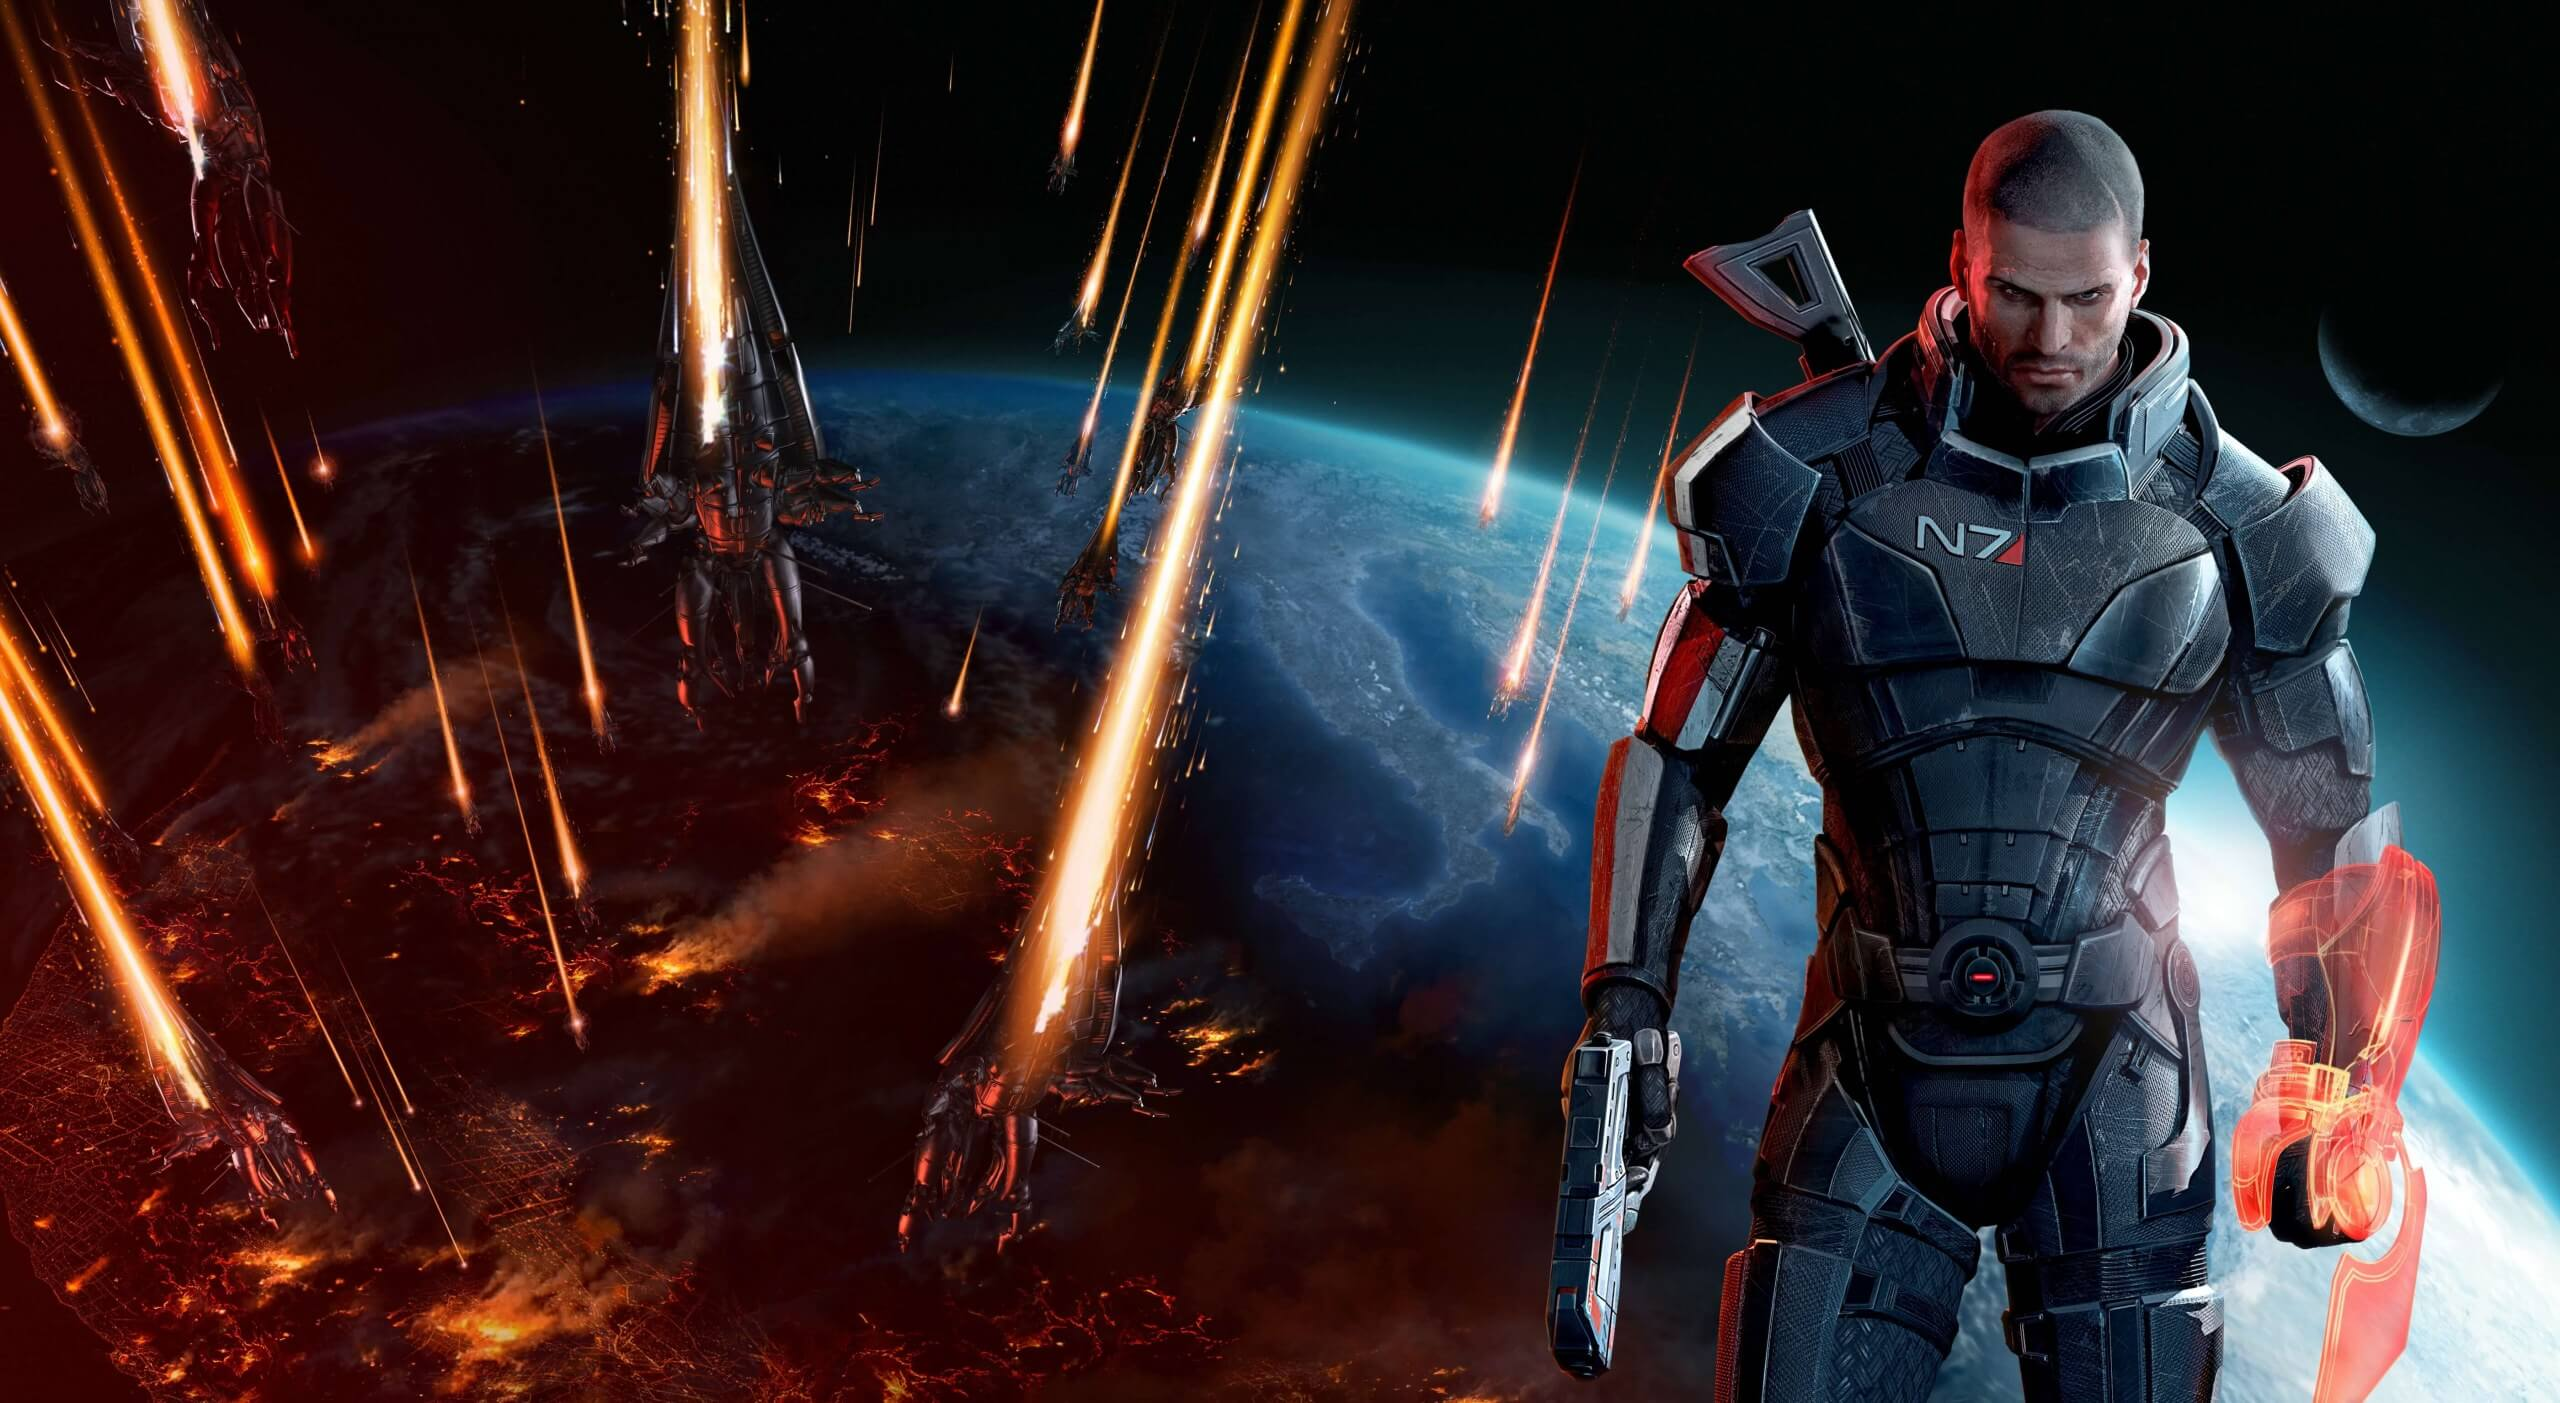 Mass Effect art book listed on Amazon sparks more rumors of a trilogy remake